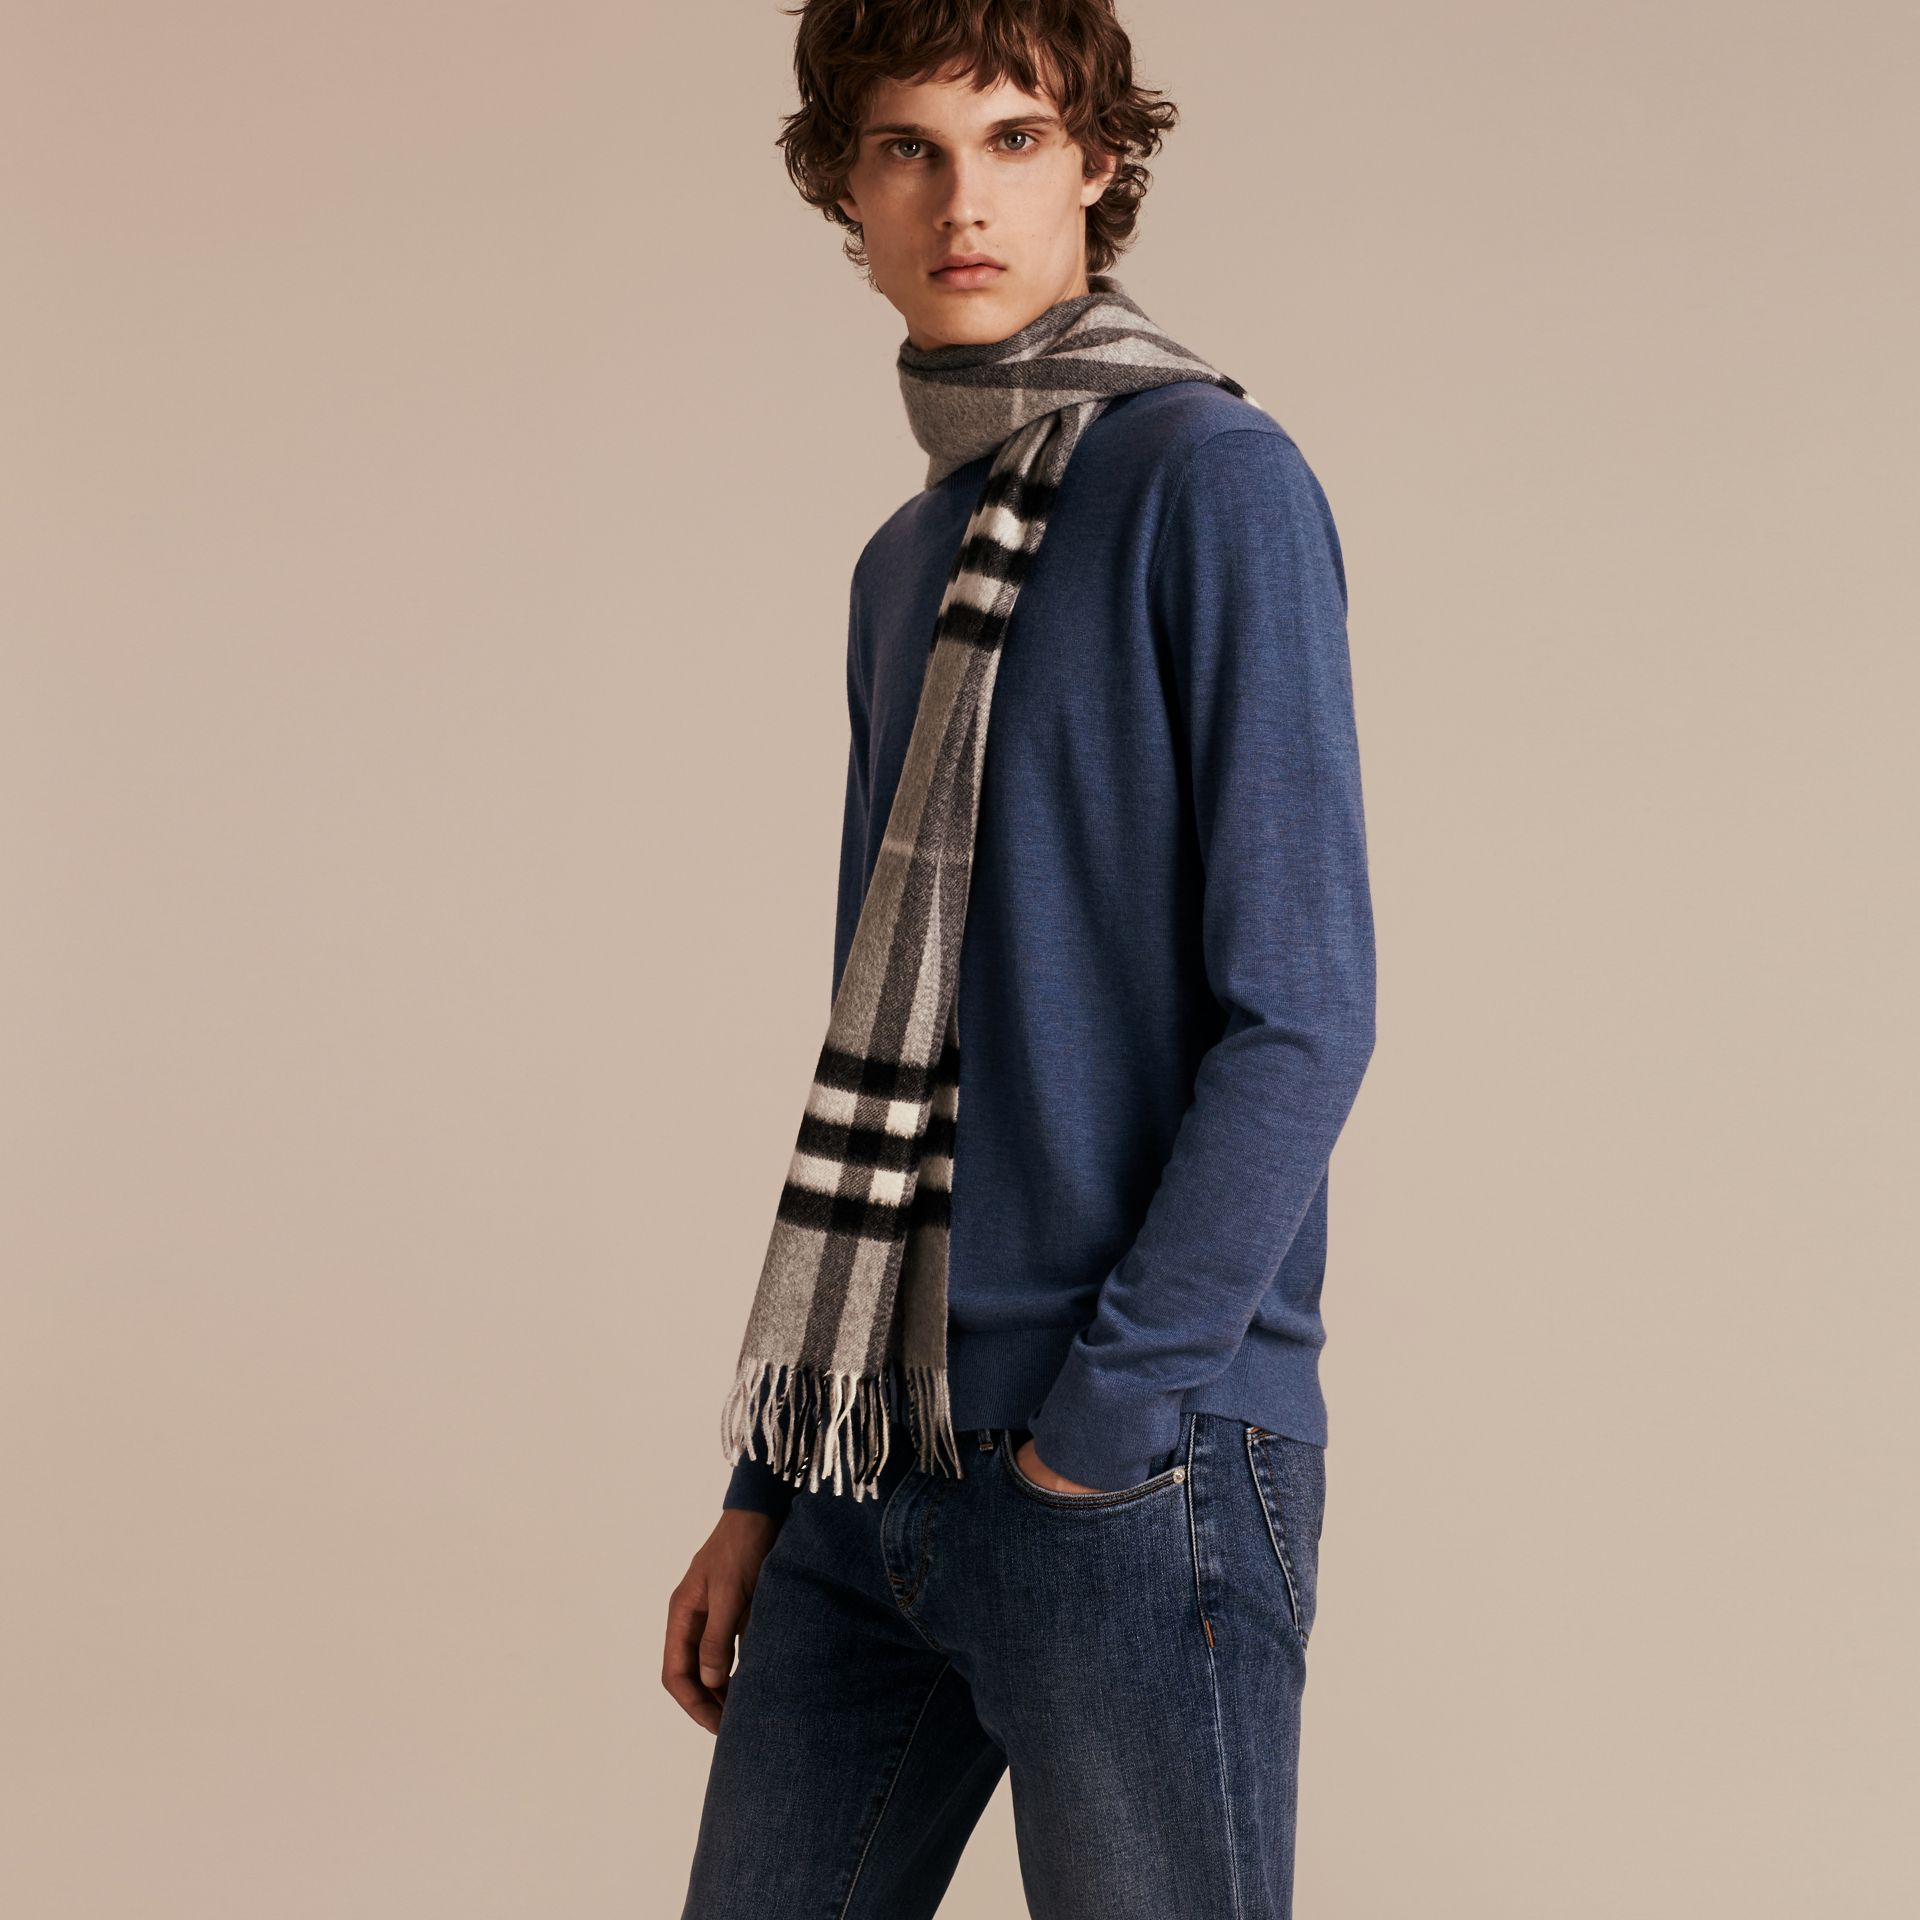 Check Jacquard Detail Cashmere Sweater in Dusty Blue - Men | Burberry - gallery image 5